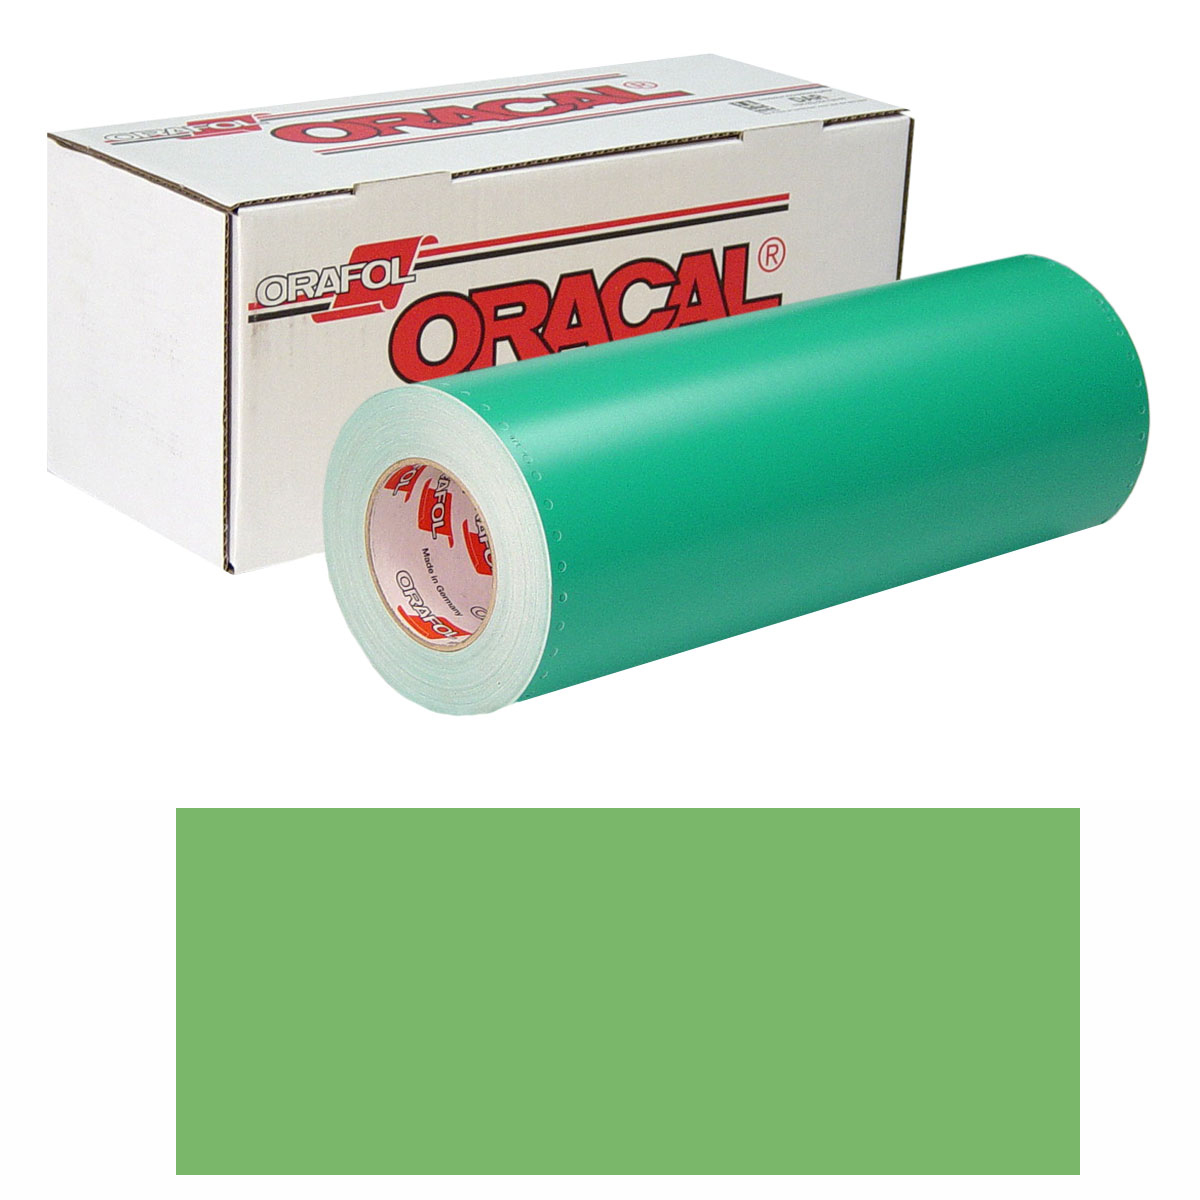 ORACAL 8500 Unp 24in X 10yd 063 Lime-Tree Grn